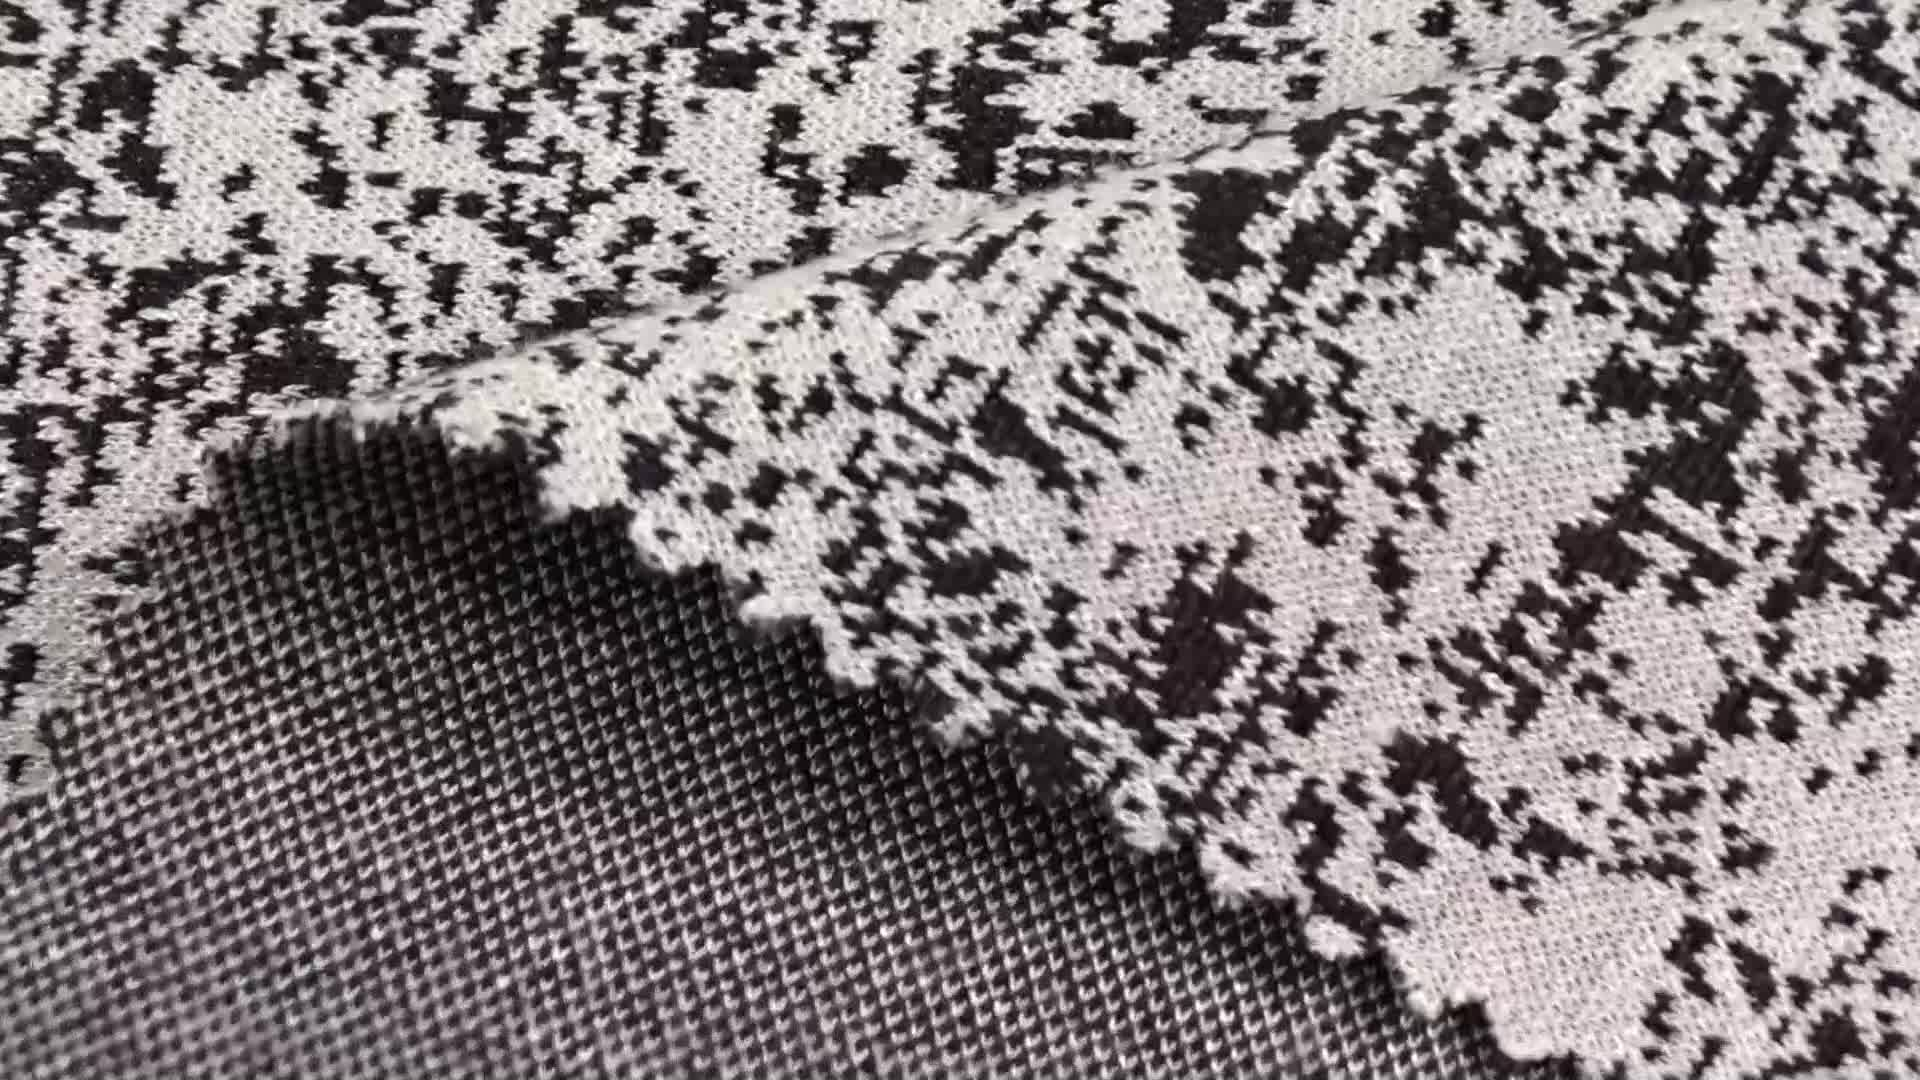 Guangdong Soft yarn-dyed jacquard knitted designer fabric high quality in stock